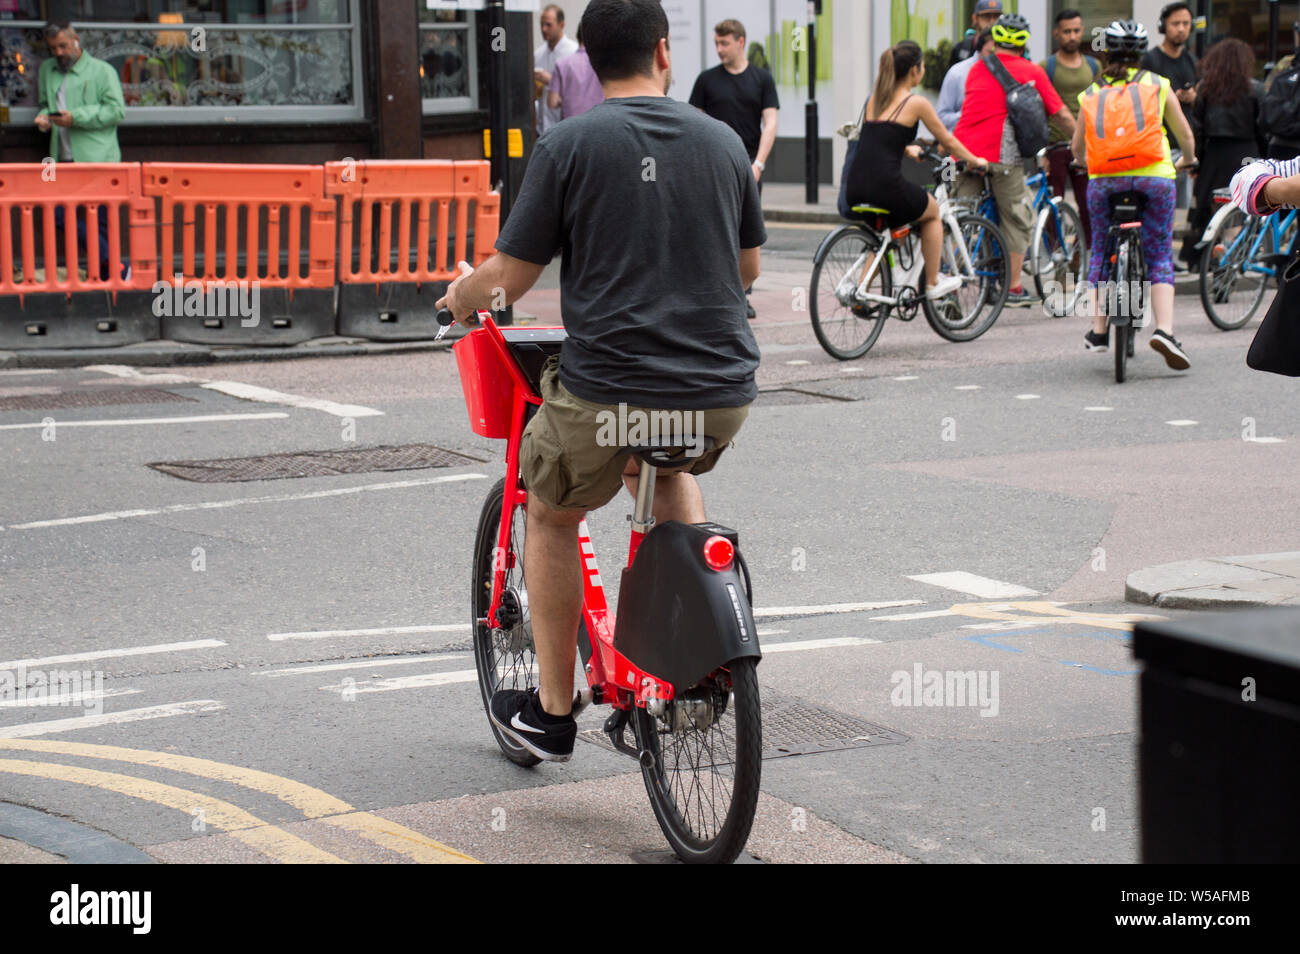 A young man riding Jump bike share in London Old Street Stock Photo